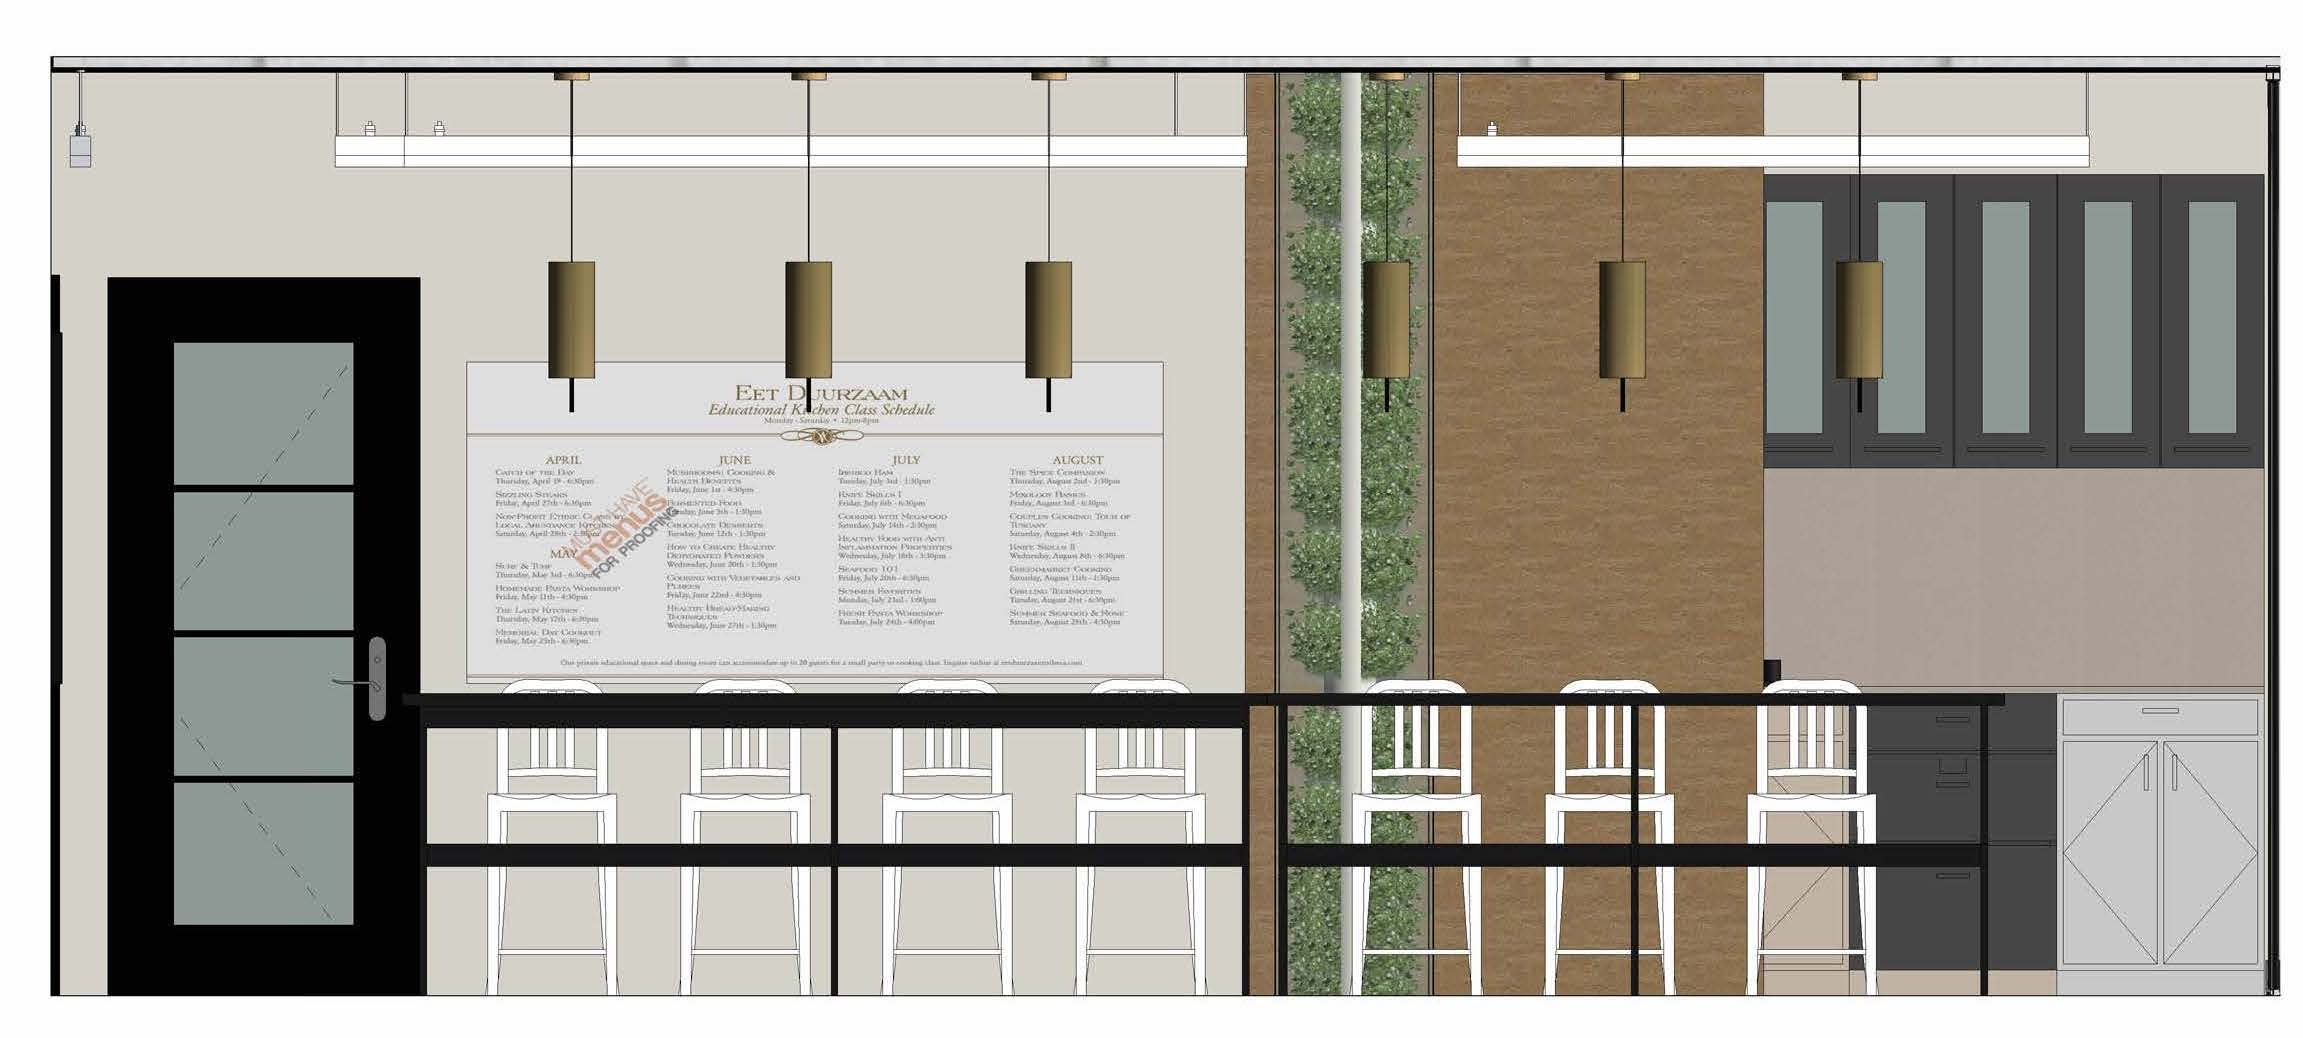 752 Restaurant Design_Floor Plan_Midterm_purged(Recovery)(Recovery)(Recovery) - Sheet - A134 - Unnamed.jpg